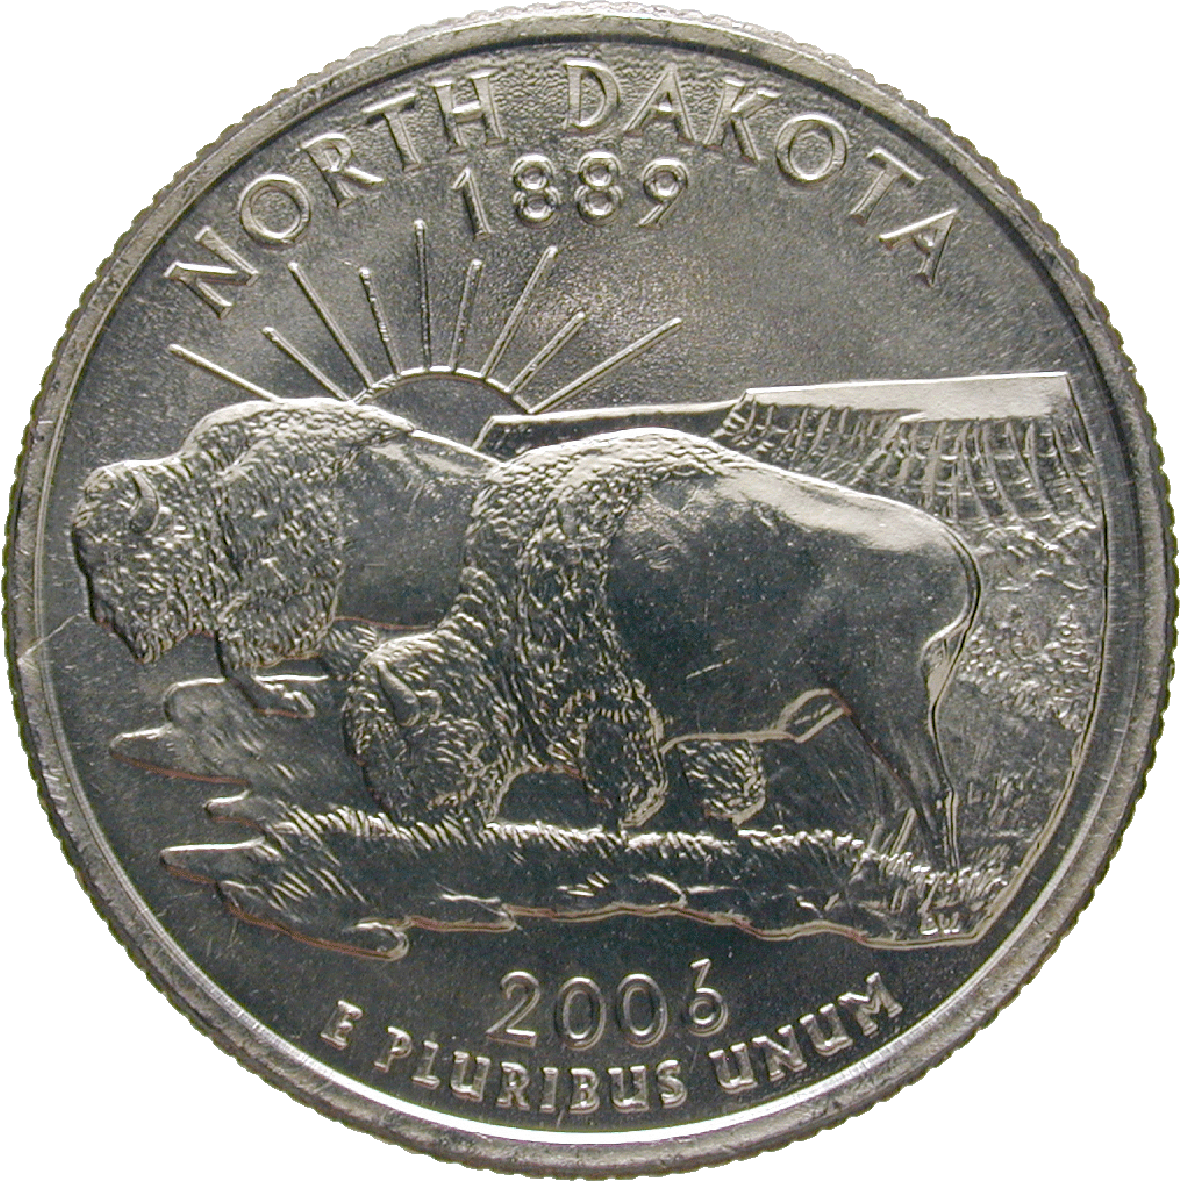 United States of America, Quarter Dollar 2006 (reverse)